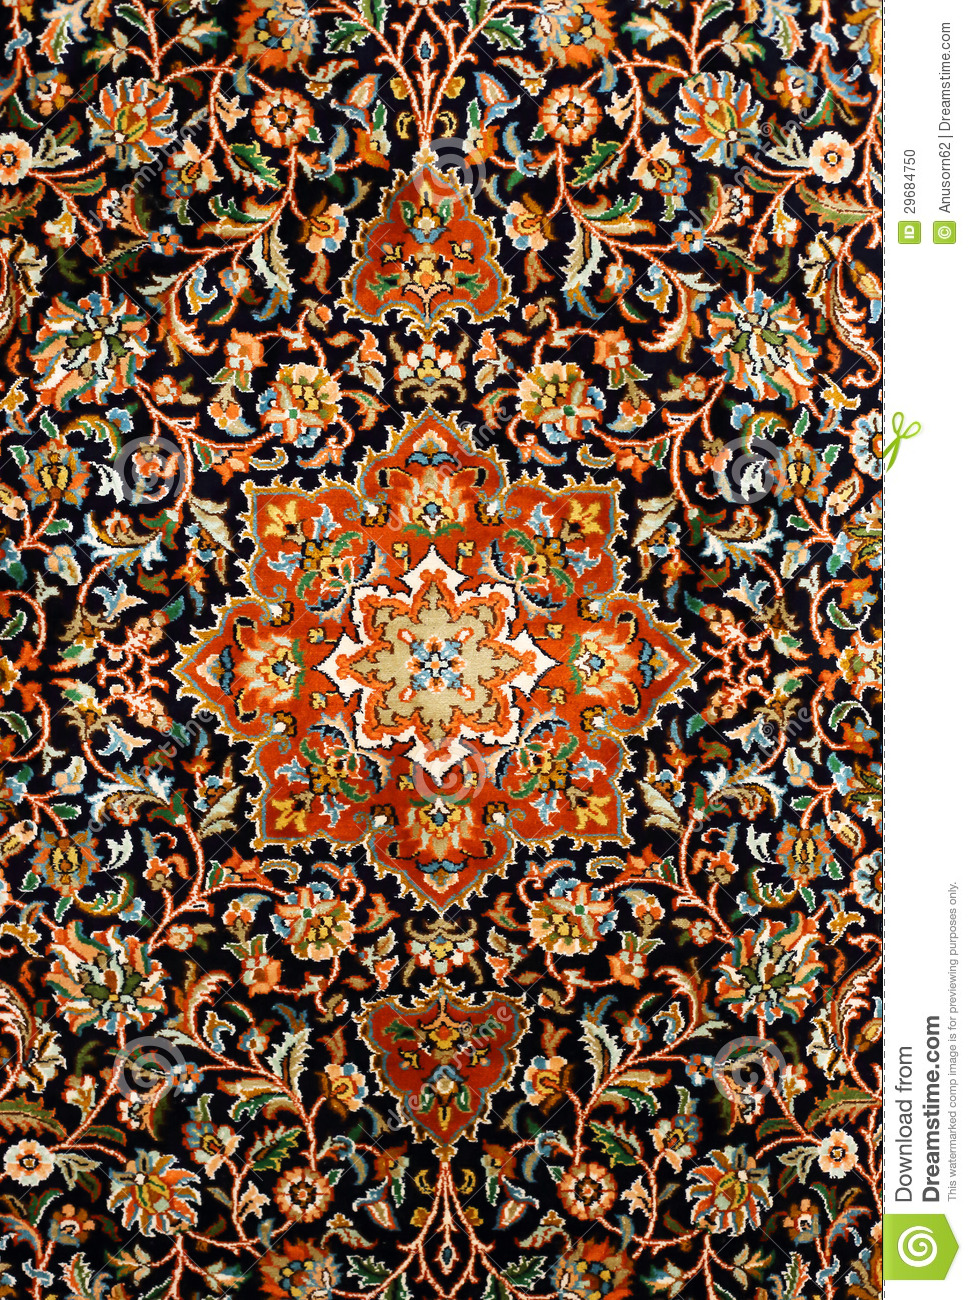 Oriental persian carpet texture stock photo image 29684750 for Alfombras persas